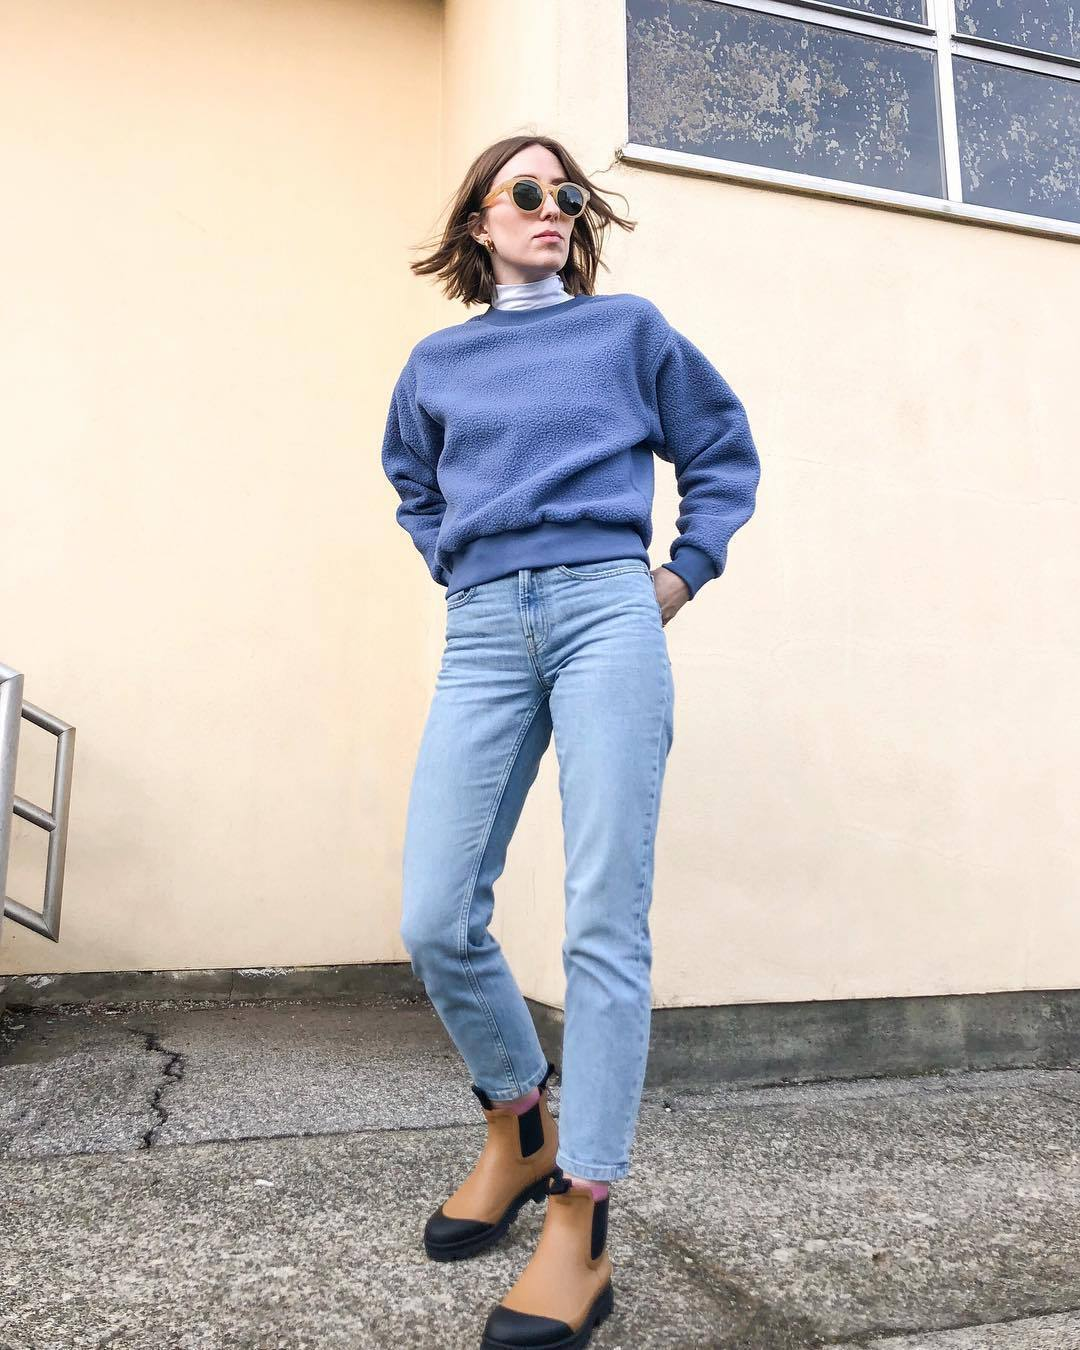 jeans straight jeans high waisted jeans ankle boots blue sweater white turtleneck top casual streetwear sunglasses